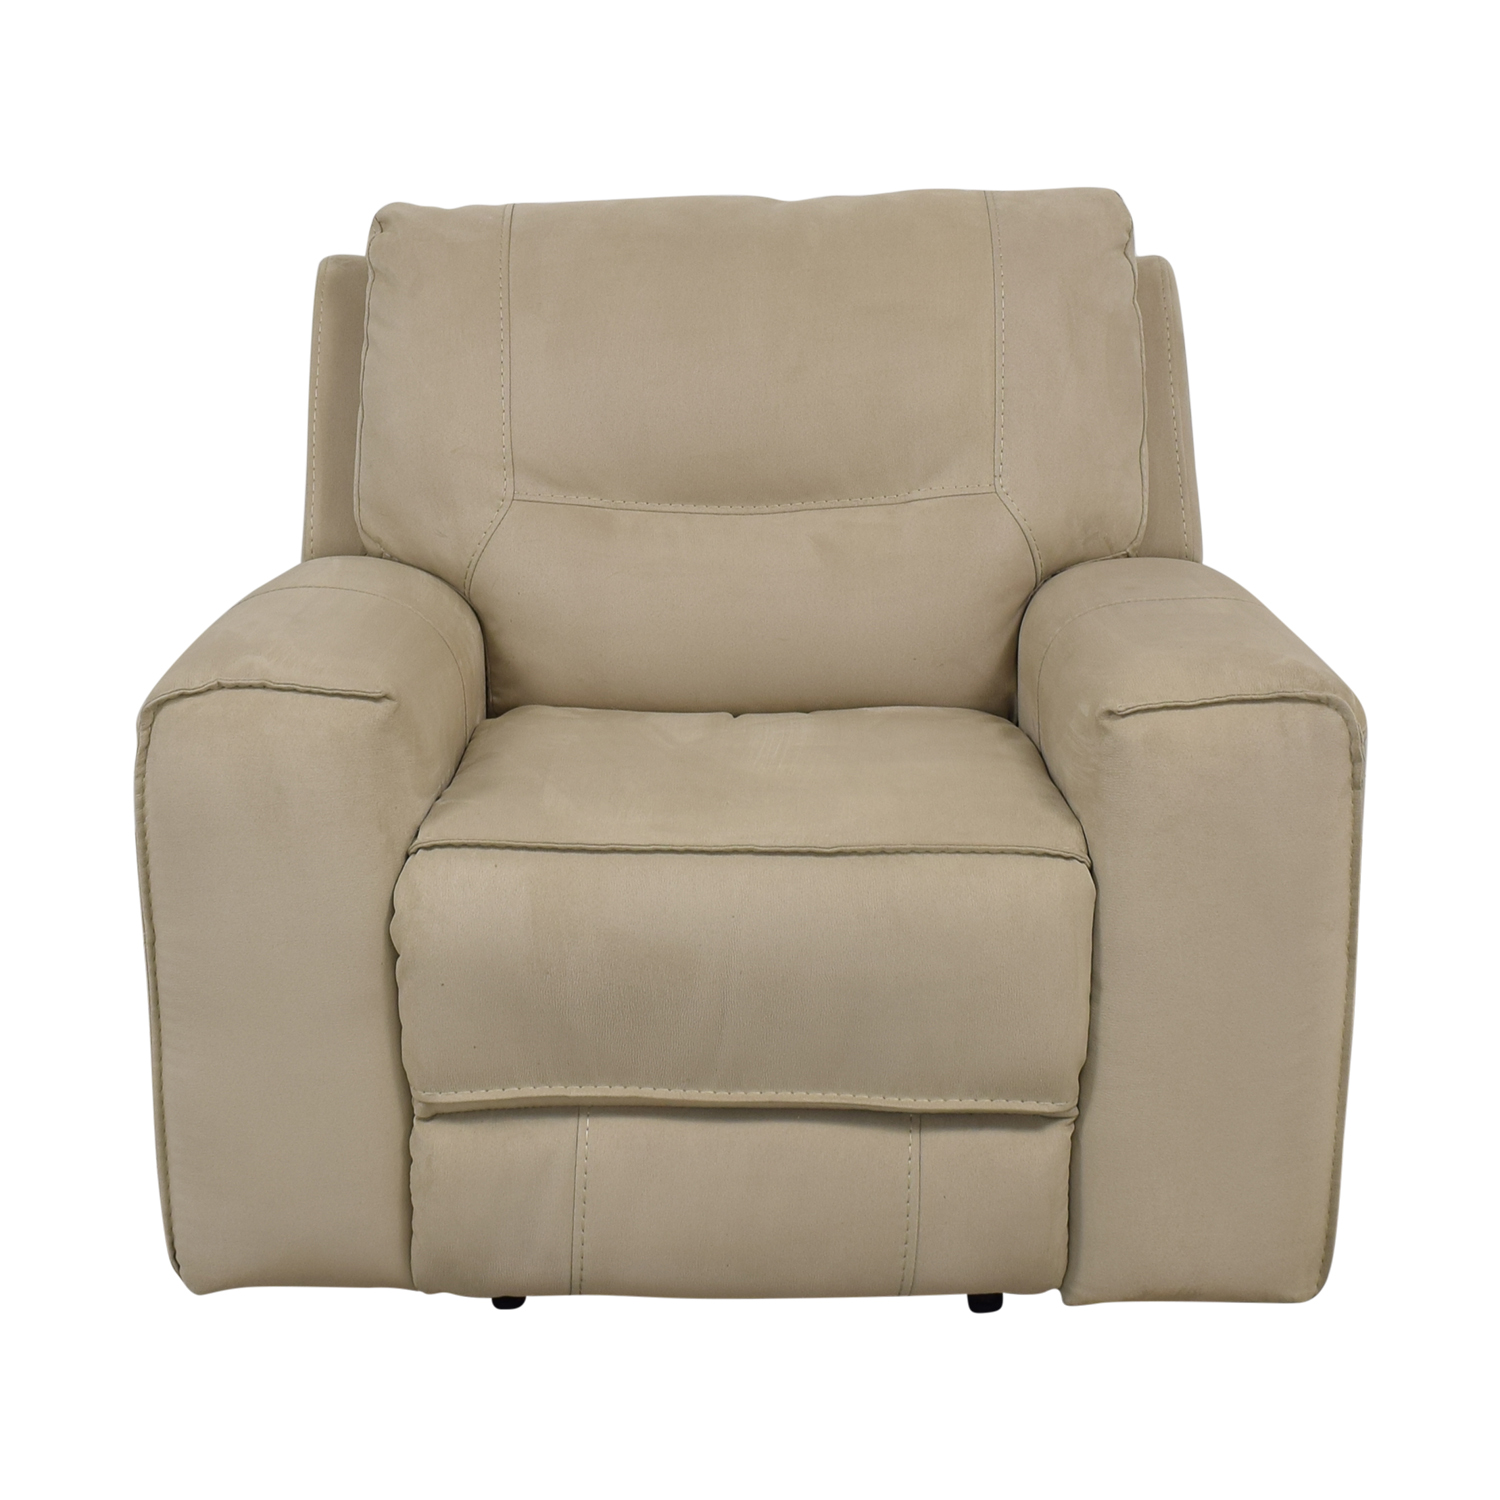 buy Macy's Power Recliner Chair Macy's